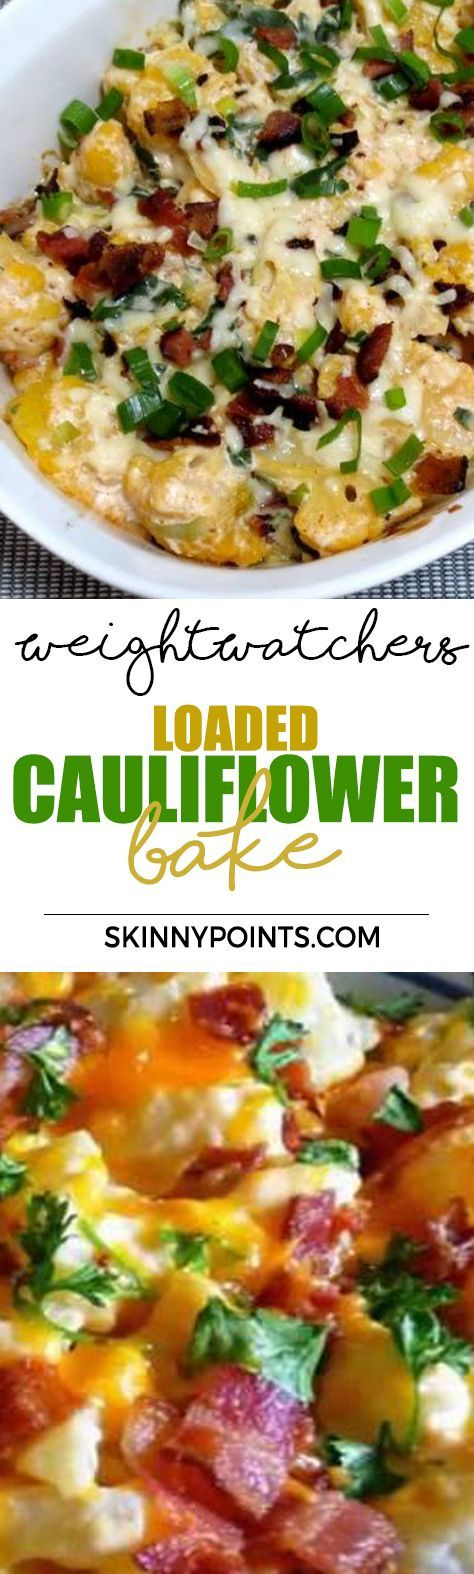 Loaded Cauliflower Bake With Only 2 Weight watchers Smart Points #loadedcauliflowerbake